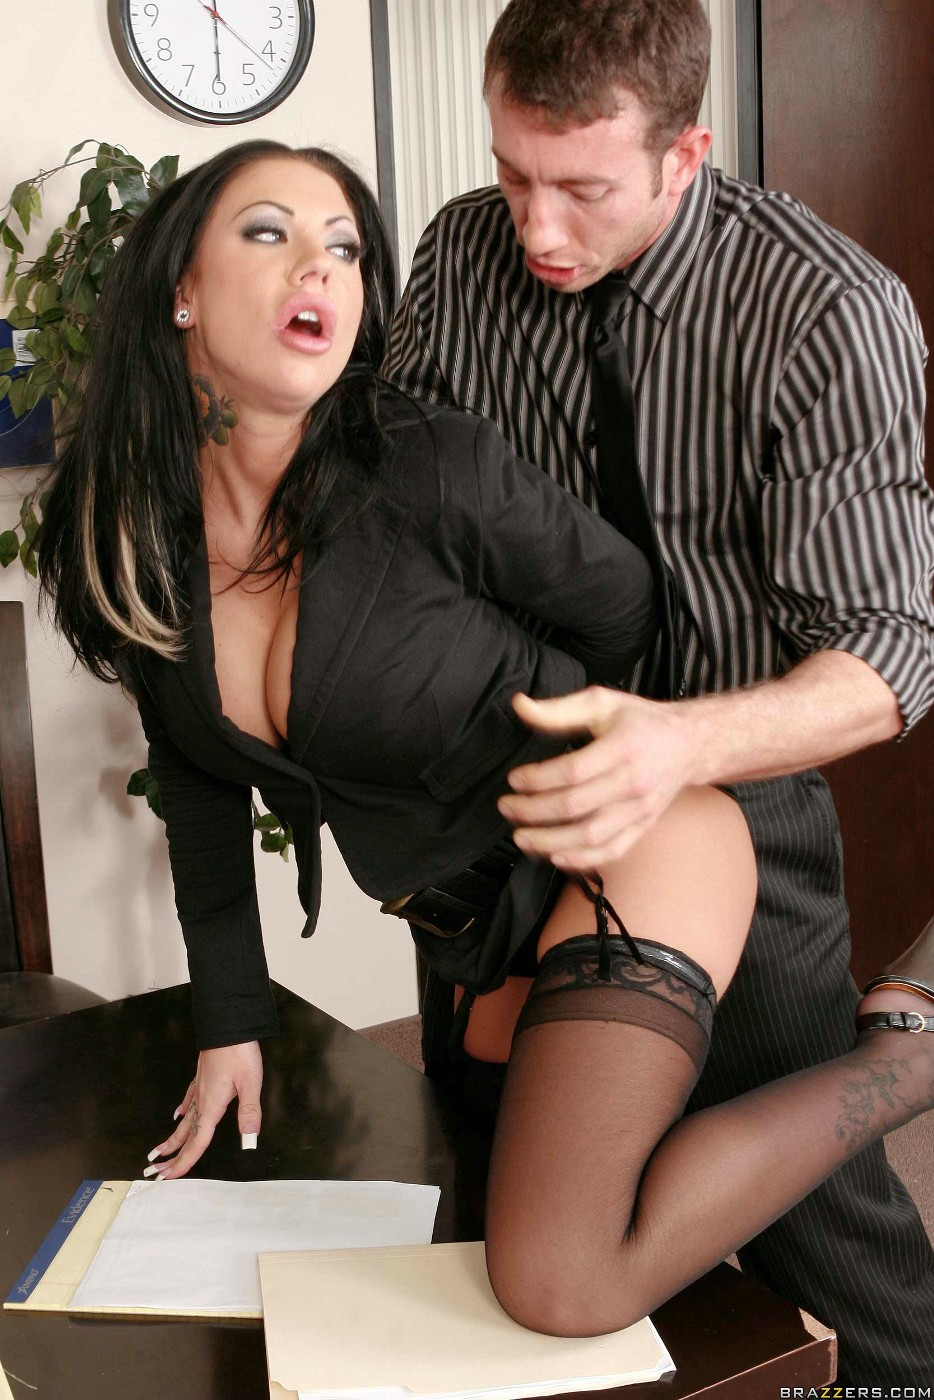 More Brazzers Pictures Visit Website